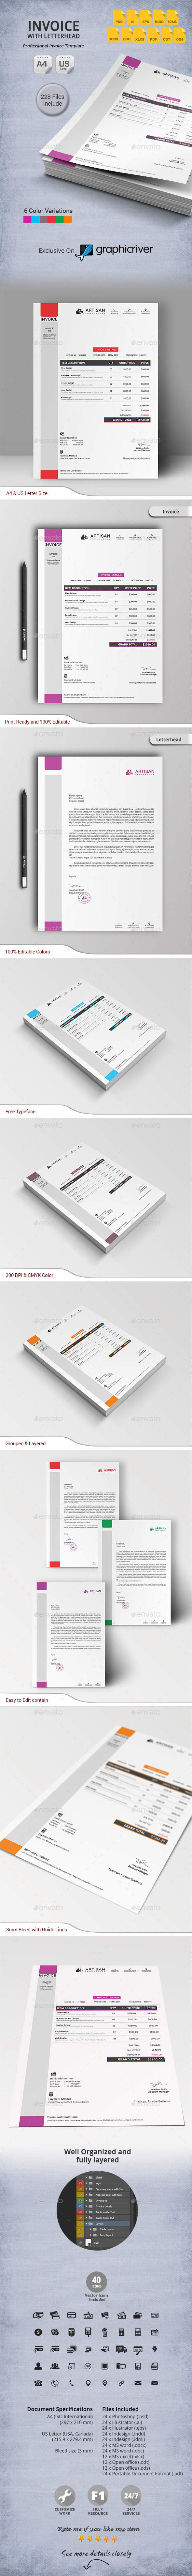 GraphicRiver Invoice with Letterhead 11031526